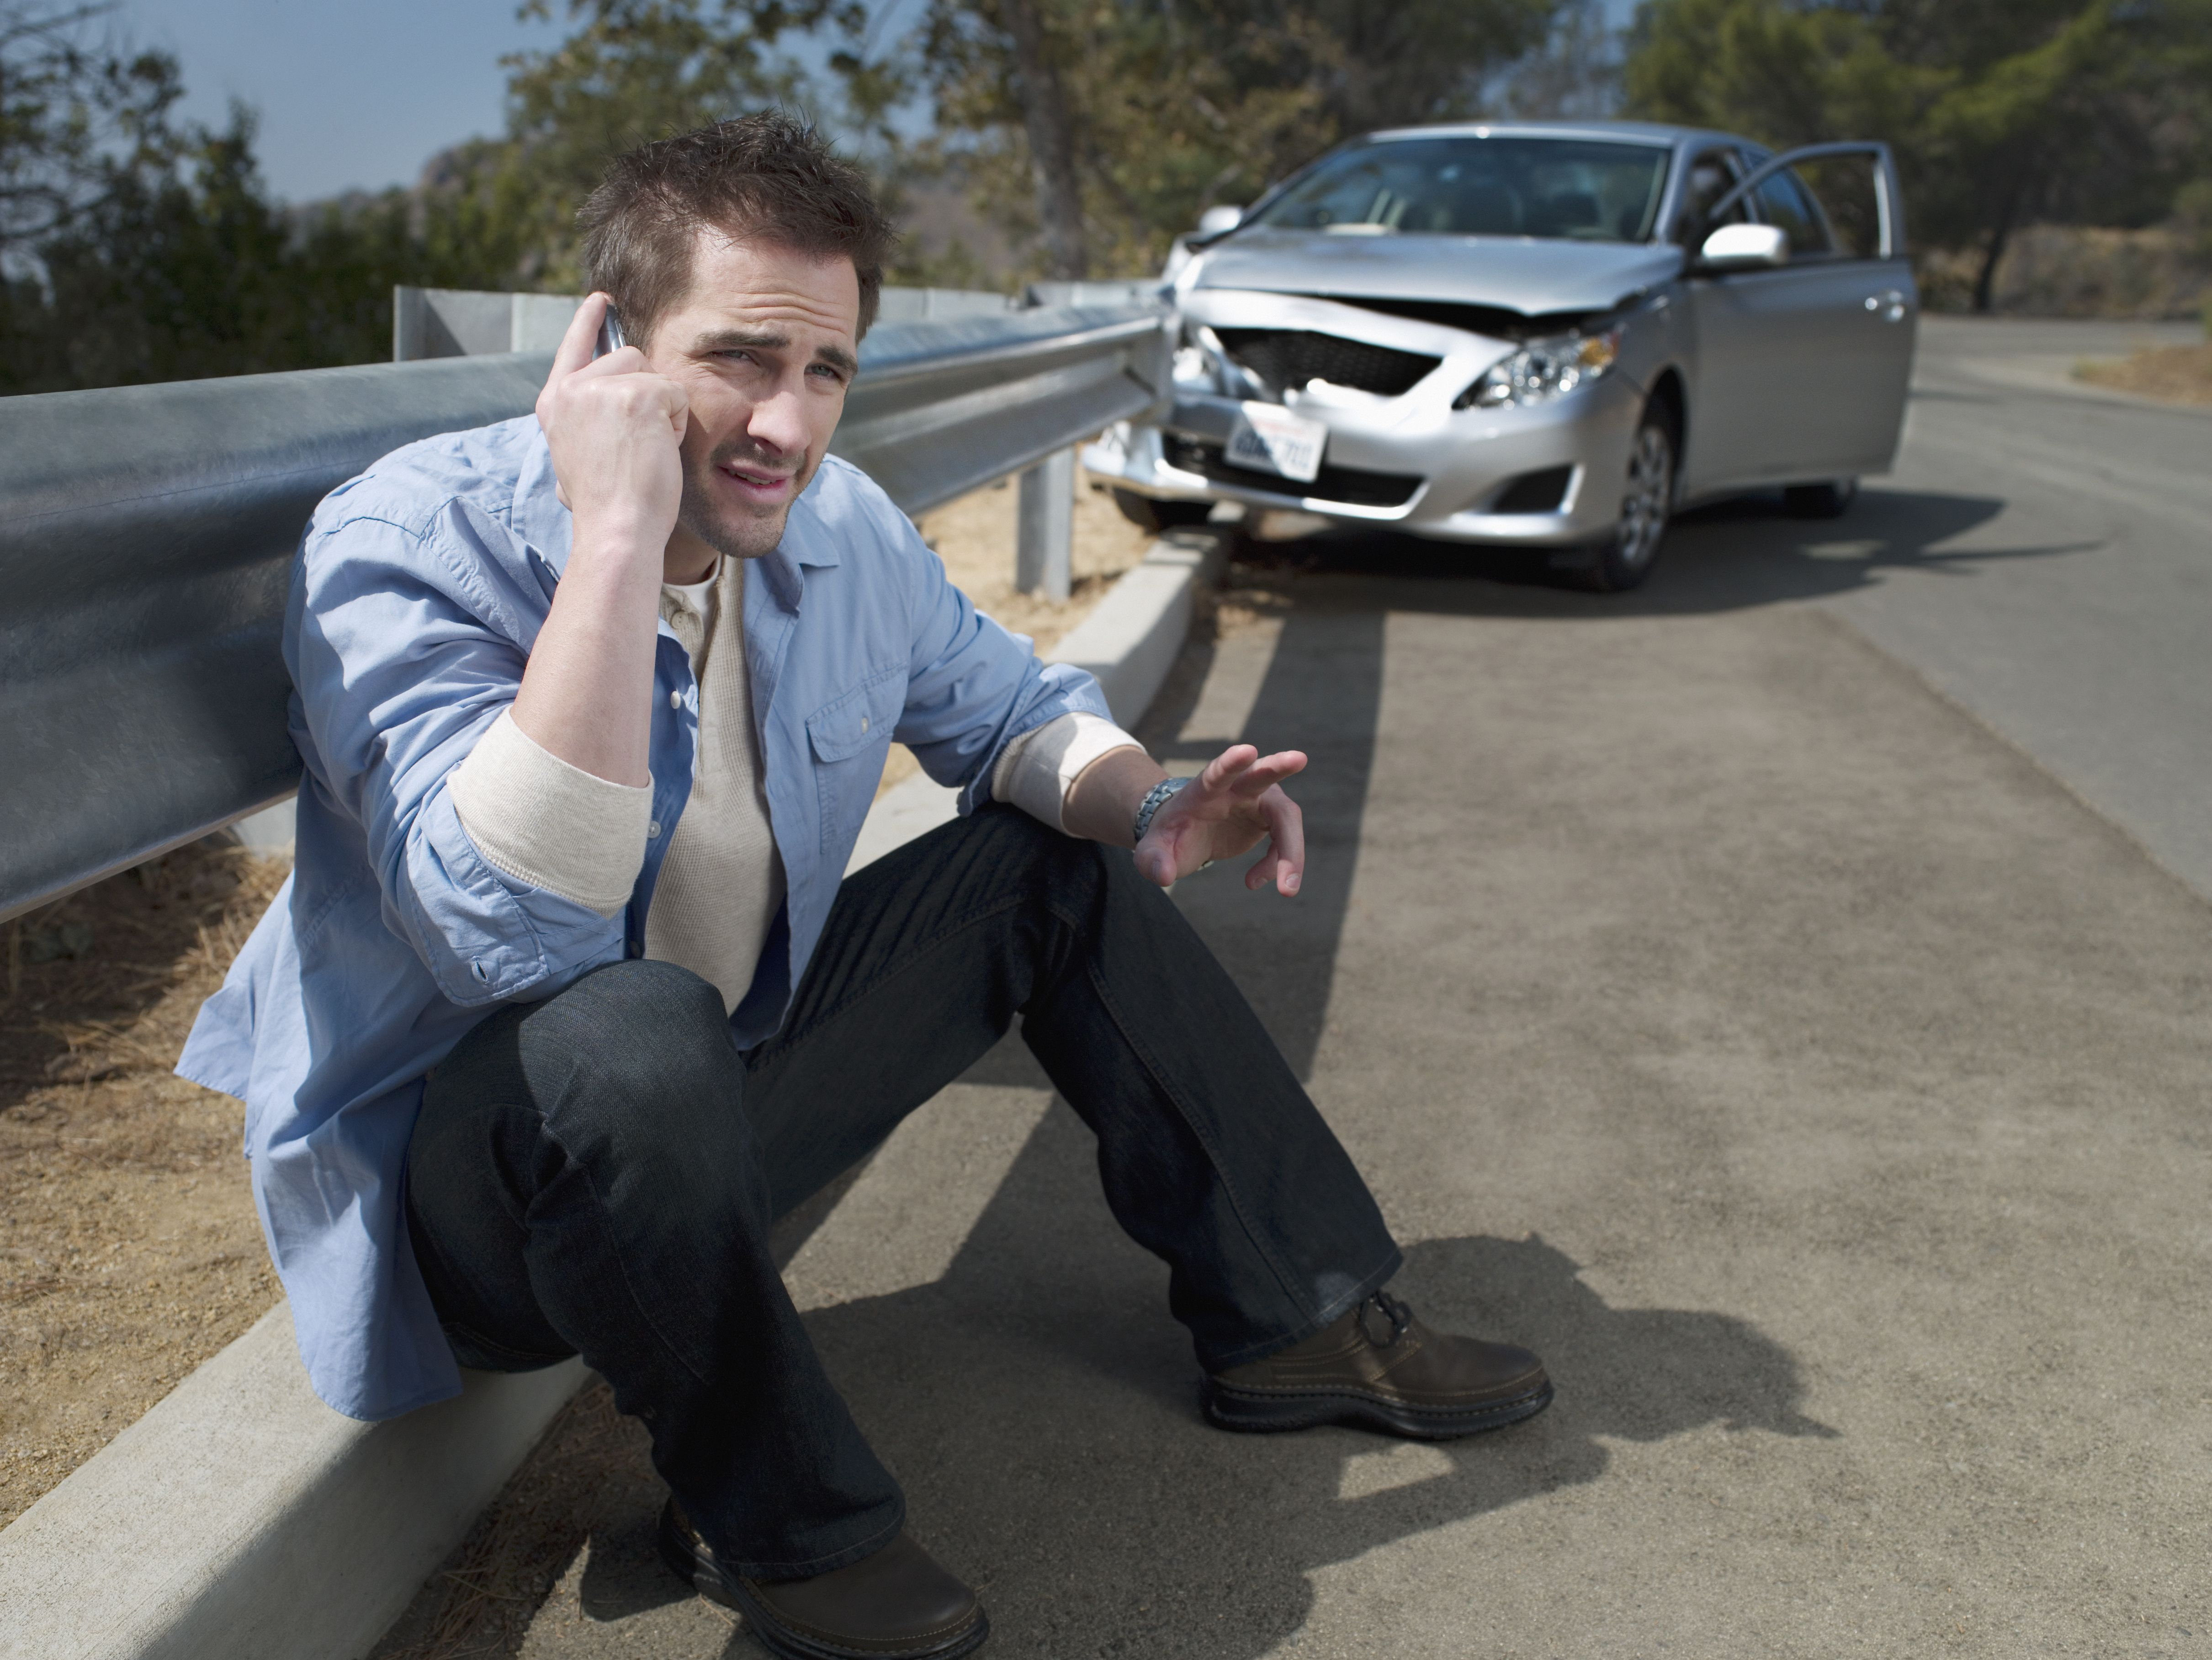 Man with crashed car calling for roadside assistance,